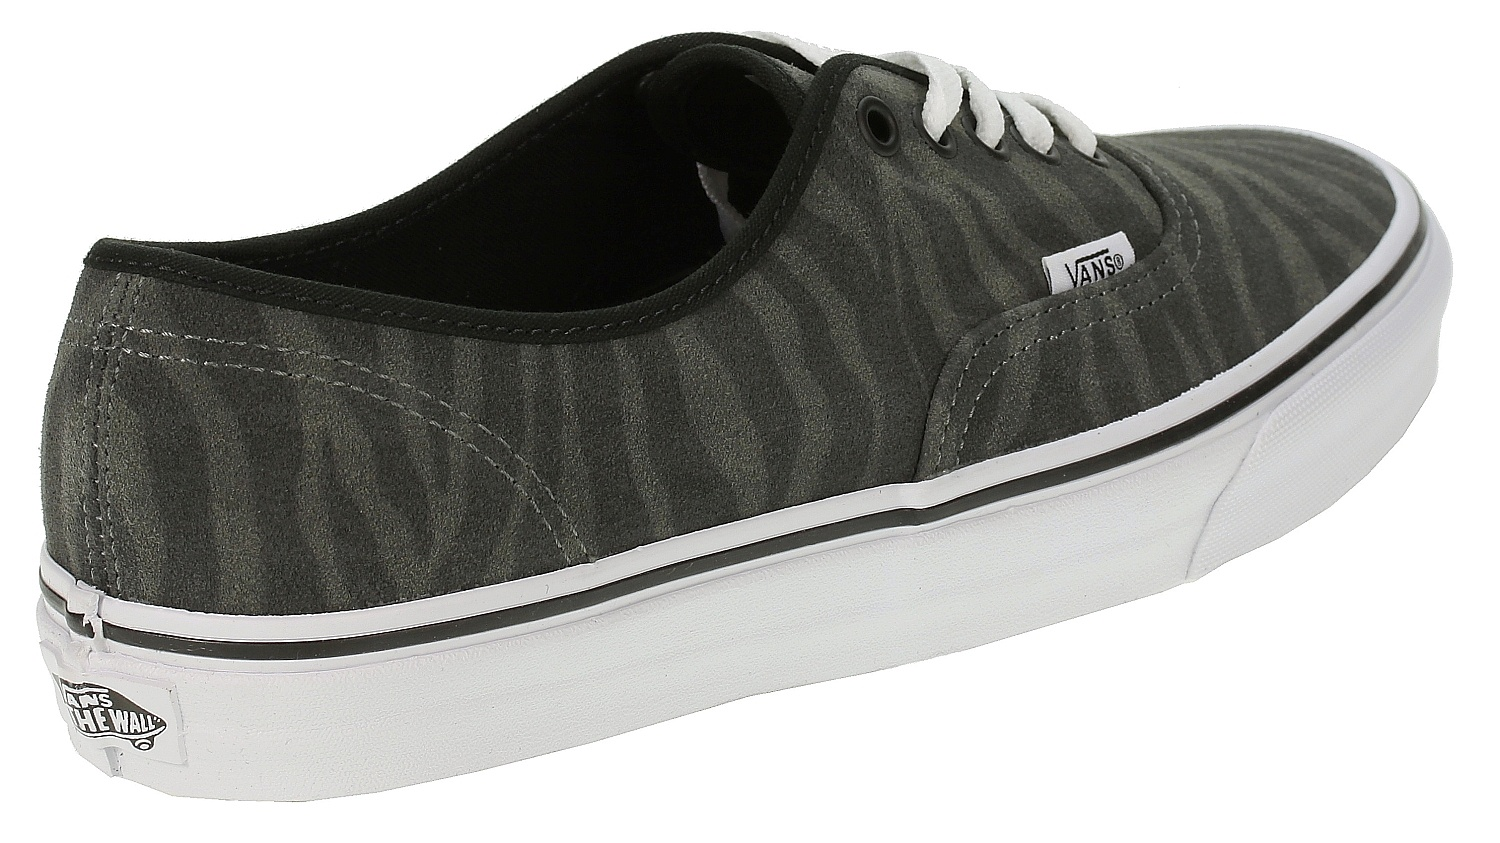 Boty Vans Slip-on - Suede/Zebra/Black